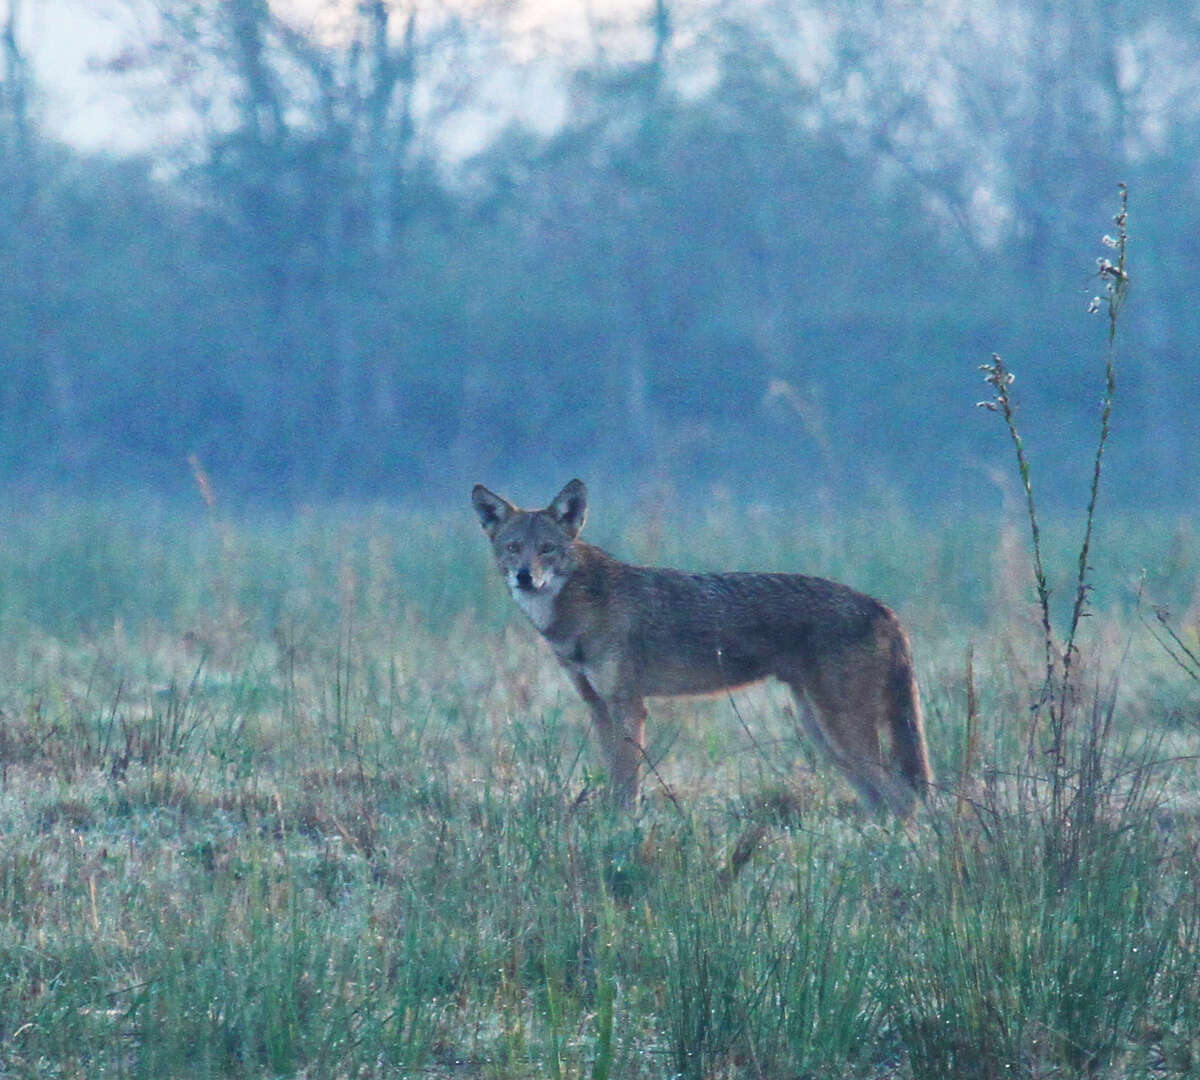 A coyote makes a dawn hunt  through dew-drenched native grasslands on Sabine Ranch. Coyotes are a common and crucial part of the rich diversity of wildlife found on the Jefferson County tract purchased by The Conservation Fund and slated to become a part of the McFaddin National Wildlife Refuge. The property was one of the final places in Texas to support red wolves, a wild canine endemic to the coastal prairie but declared extinct in the state in the 1970s.